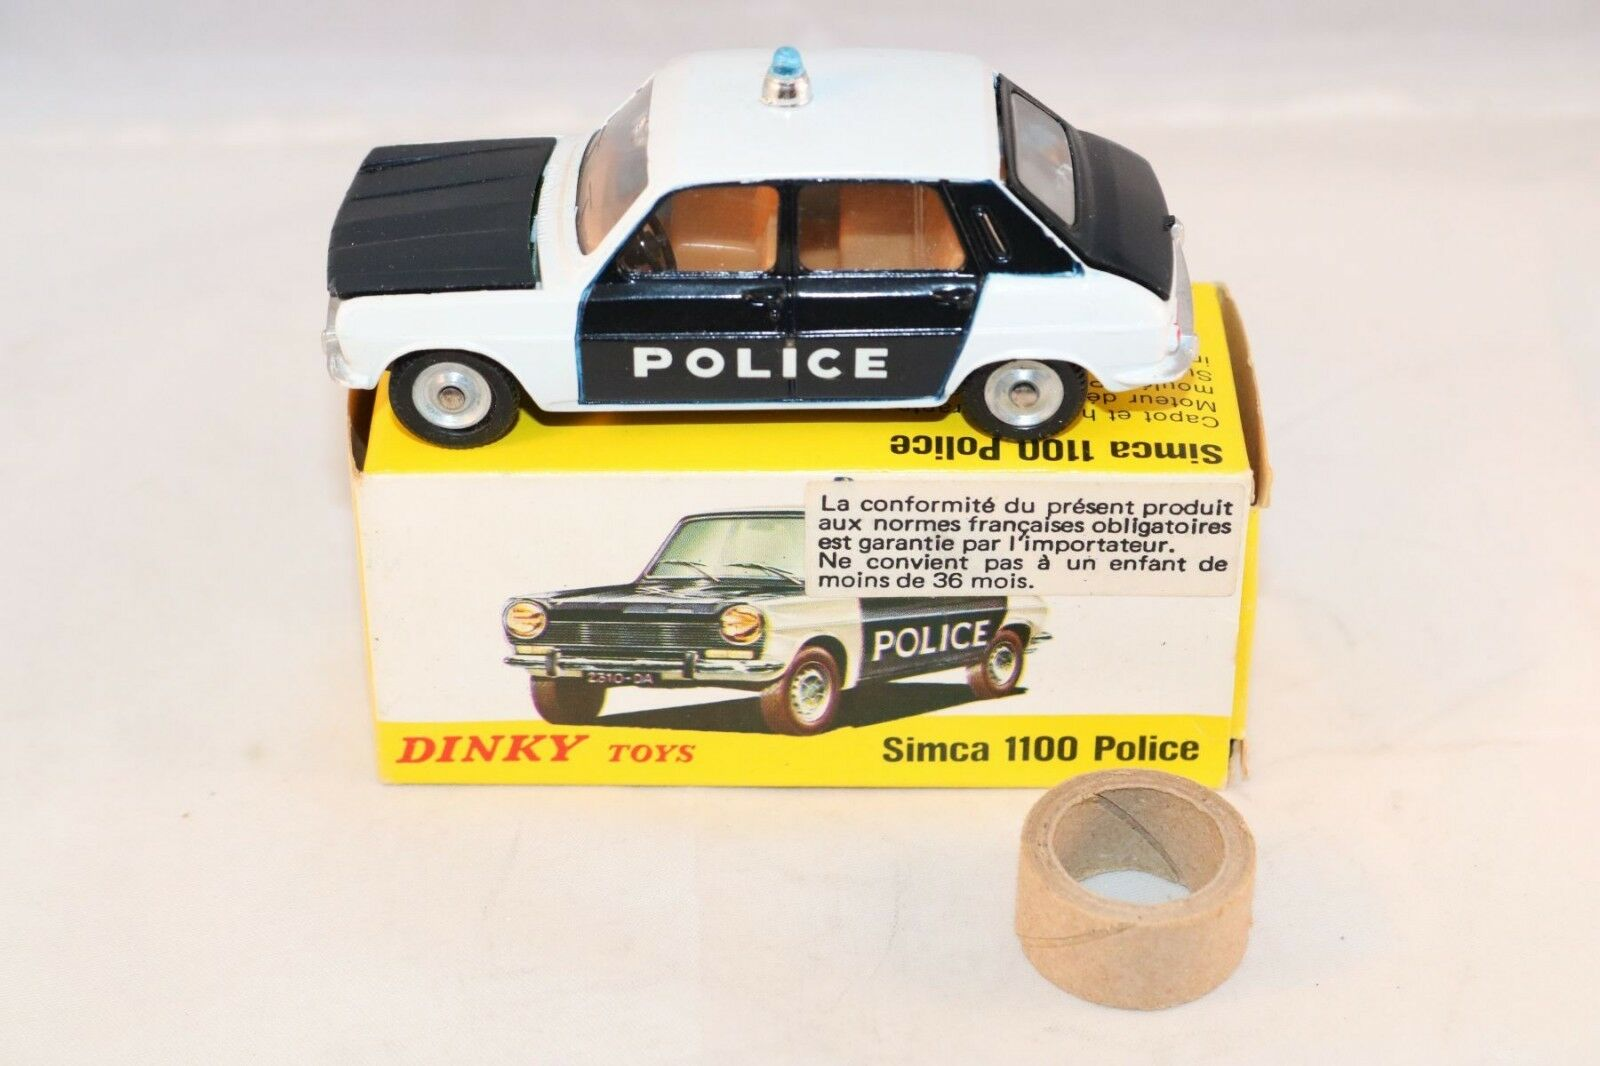 Dinky Toys 1450 Simca 1100 Police Police Police Perfect mint in box difficult to find a beauty 63c6ce